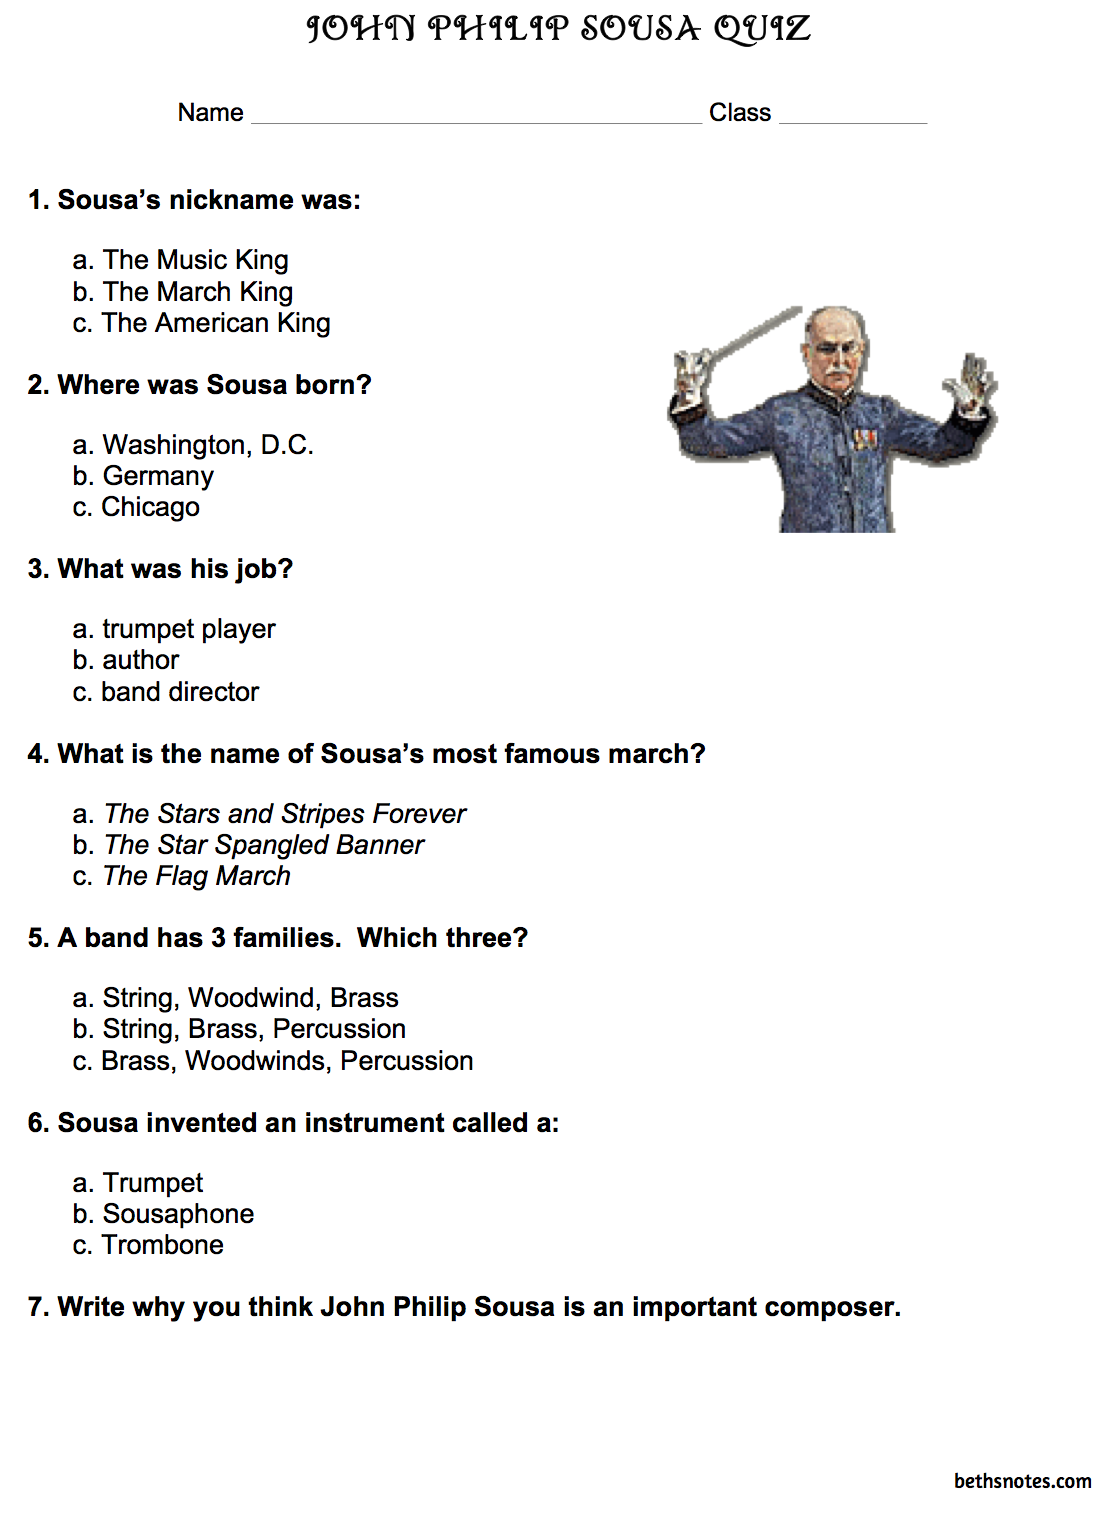 Worksheets Beethoven Lives Upstairs Worksheet john philip sousa quiz word search music teacher resources search